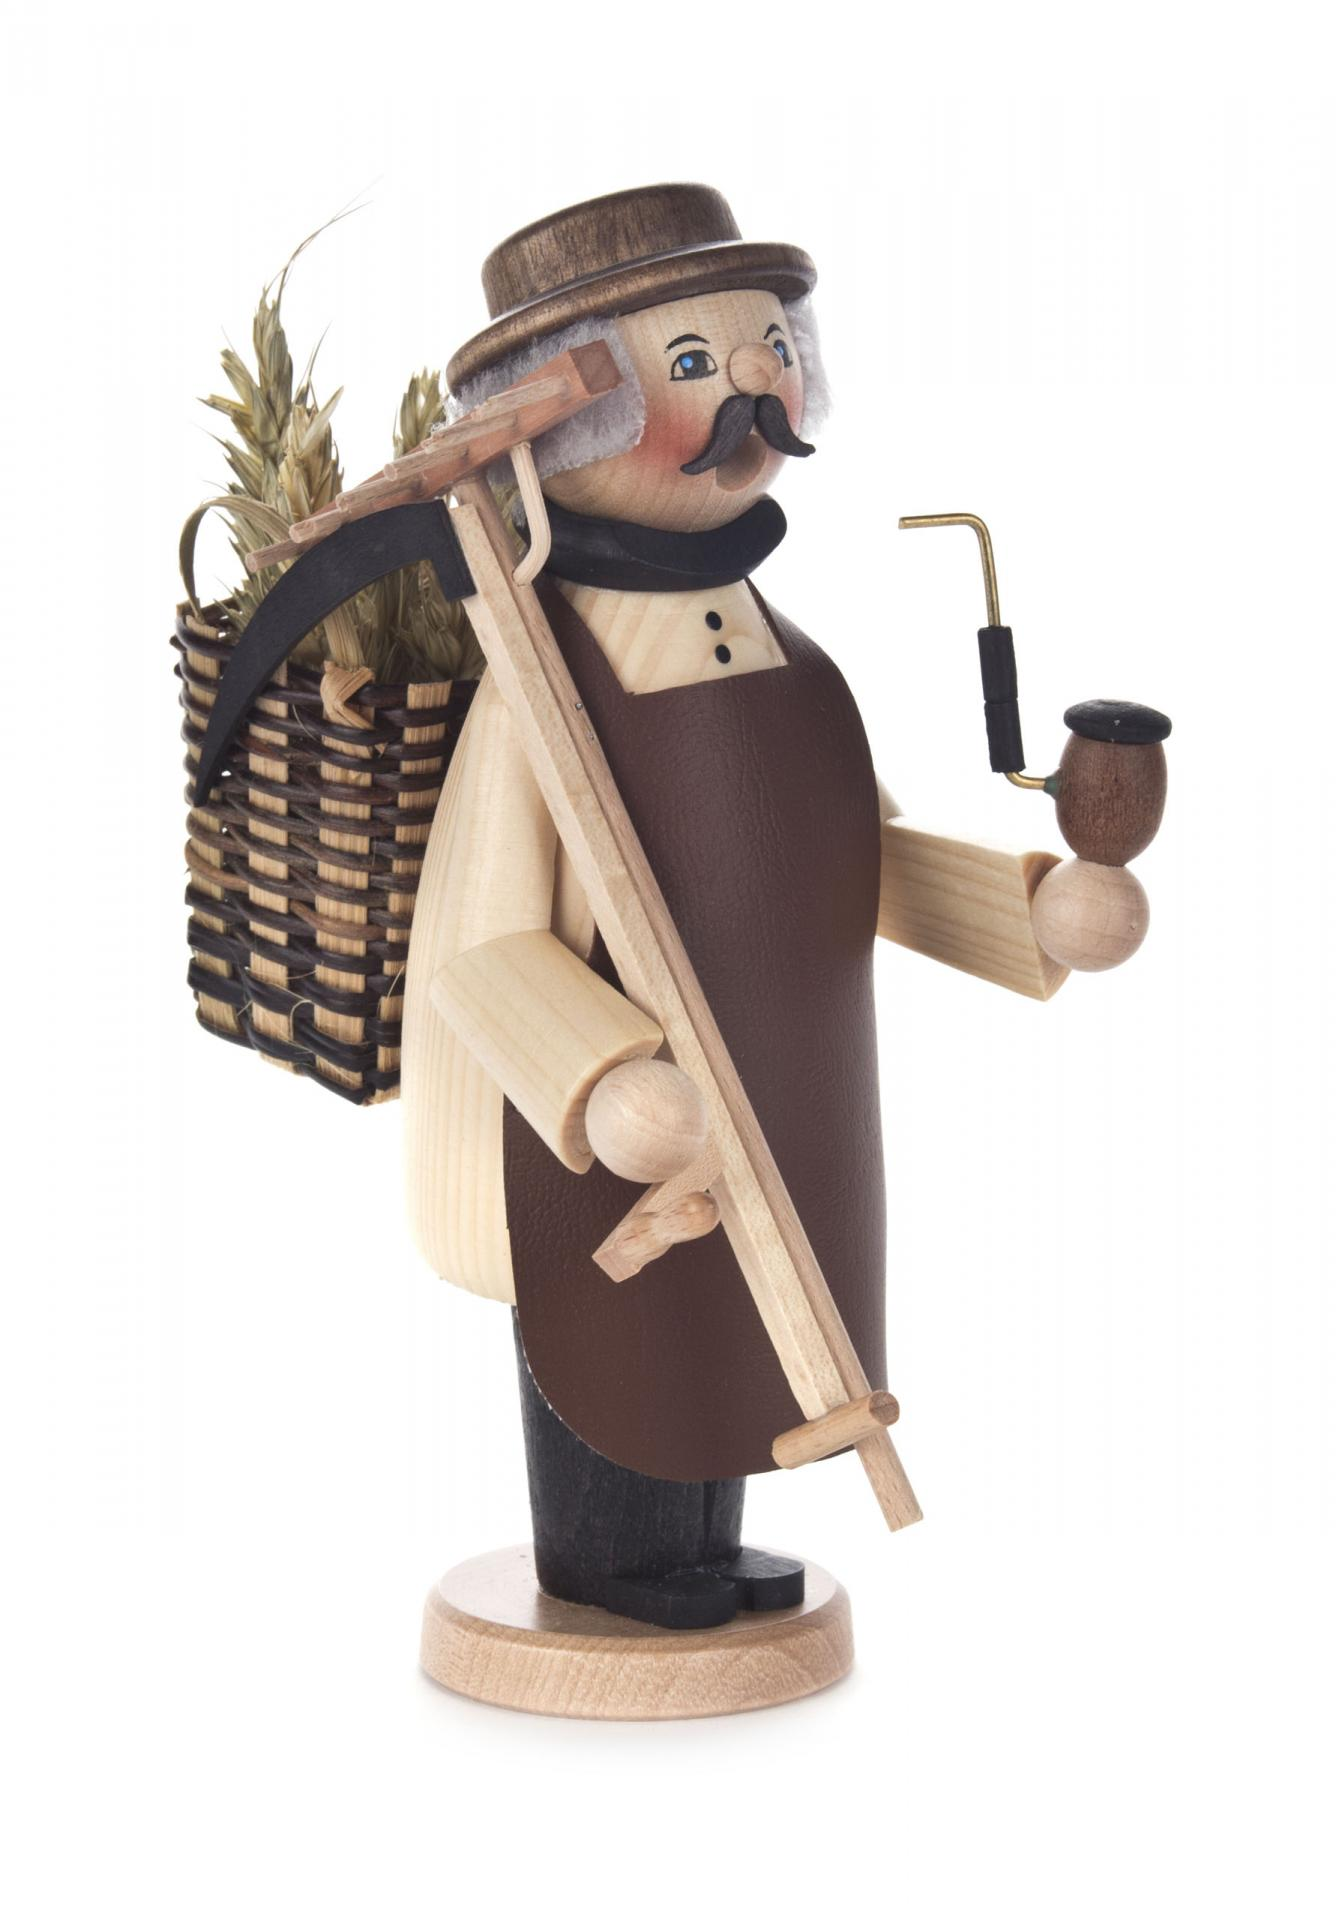 Wooden Figurines – Farmer